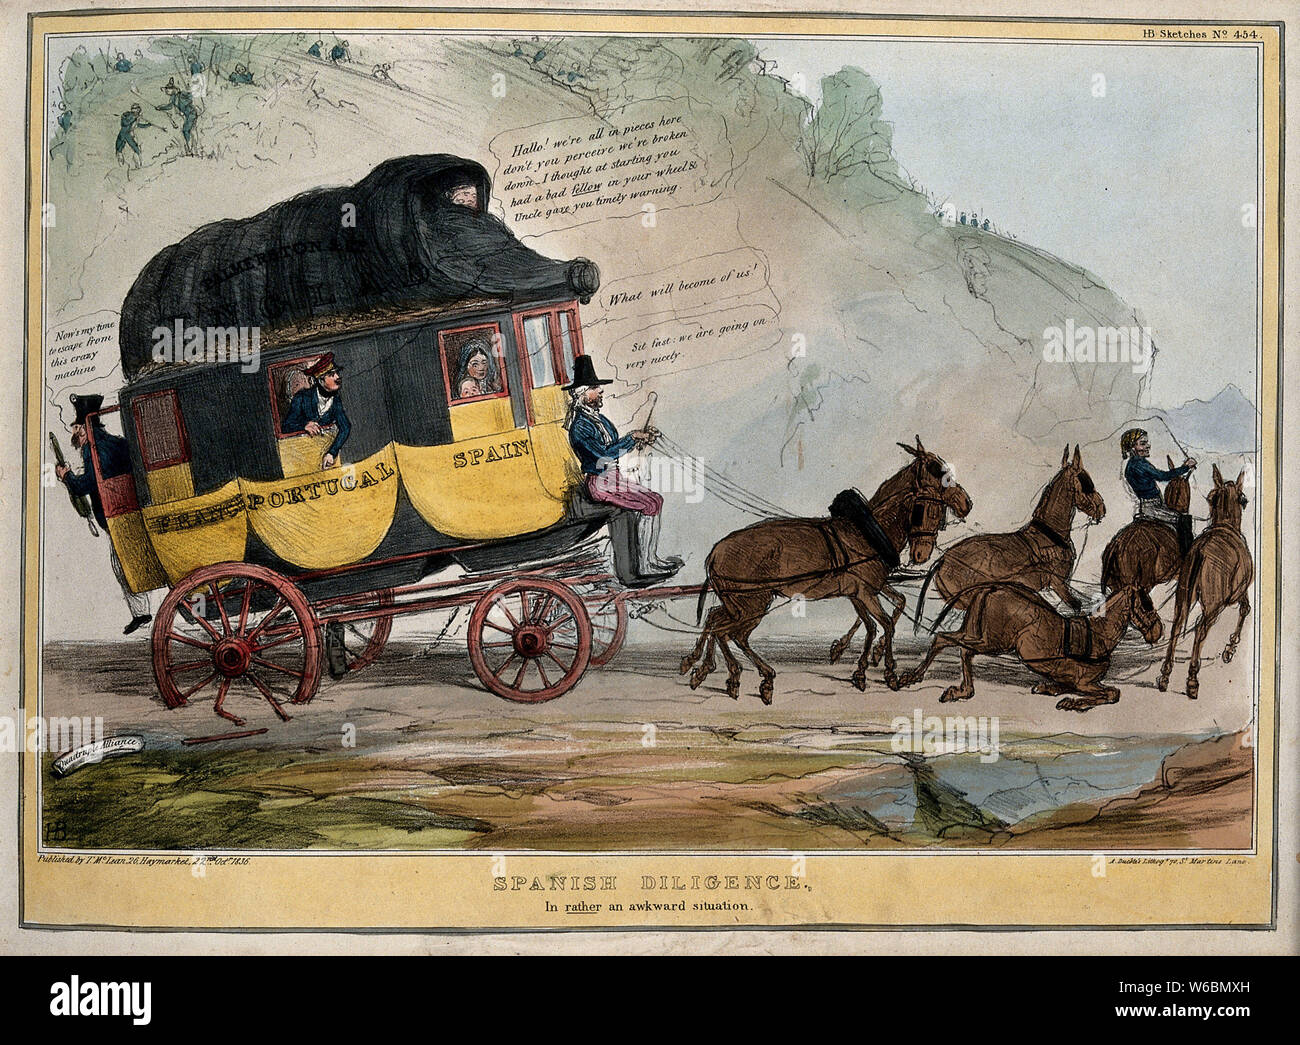 A coach representing the quadruple alliance of England, France, Portugal and Spain is disabled owing to a broken wheel. Coloured lithograph by H.B. (John Doyle), 1836. Stock Photo